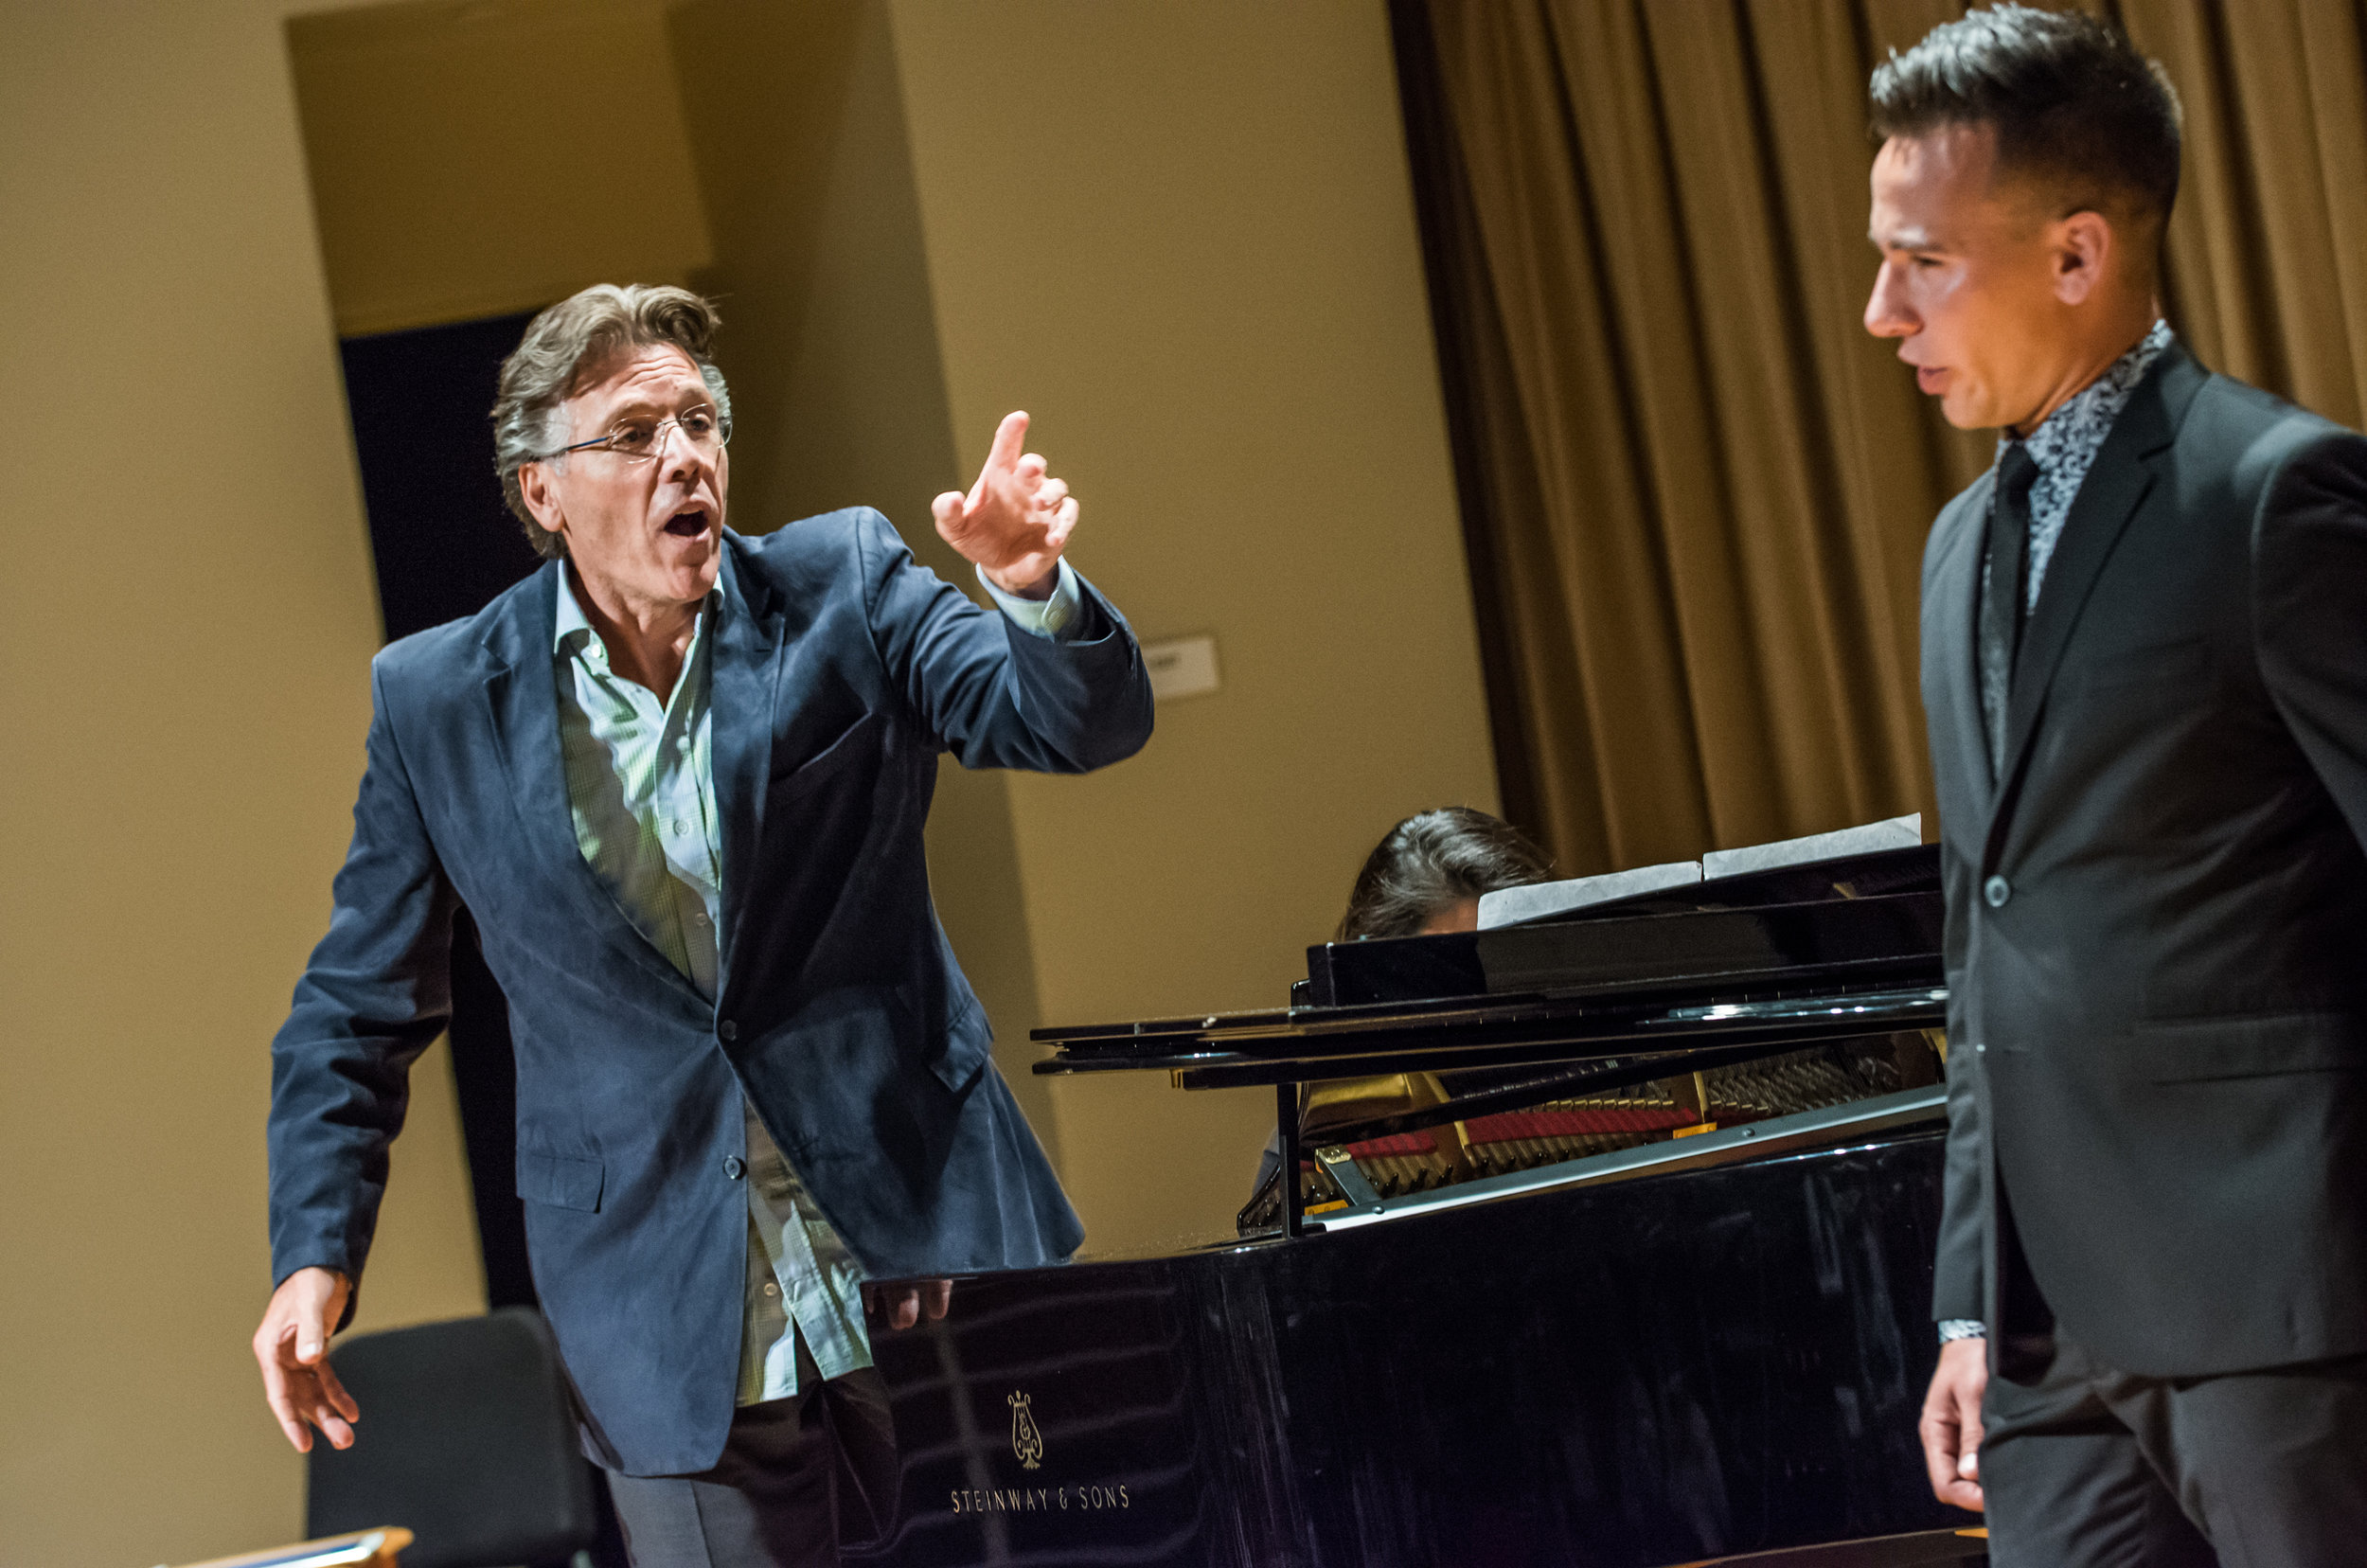 2016 Professional Fellows pianist Jeong-Eun Lee and baritone Andrew McLaughlin with Thomas Hampson in a master class.